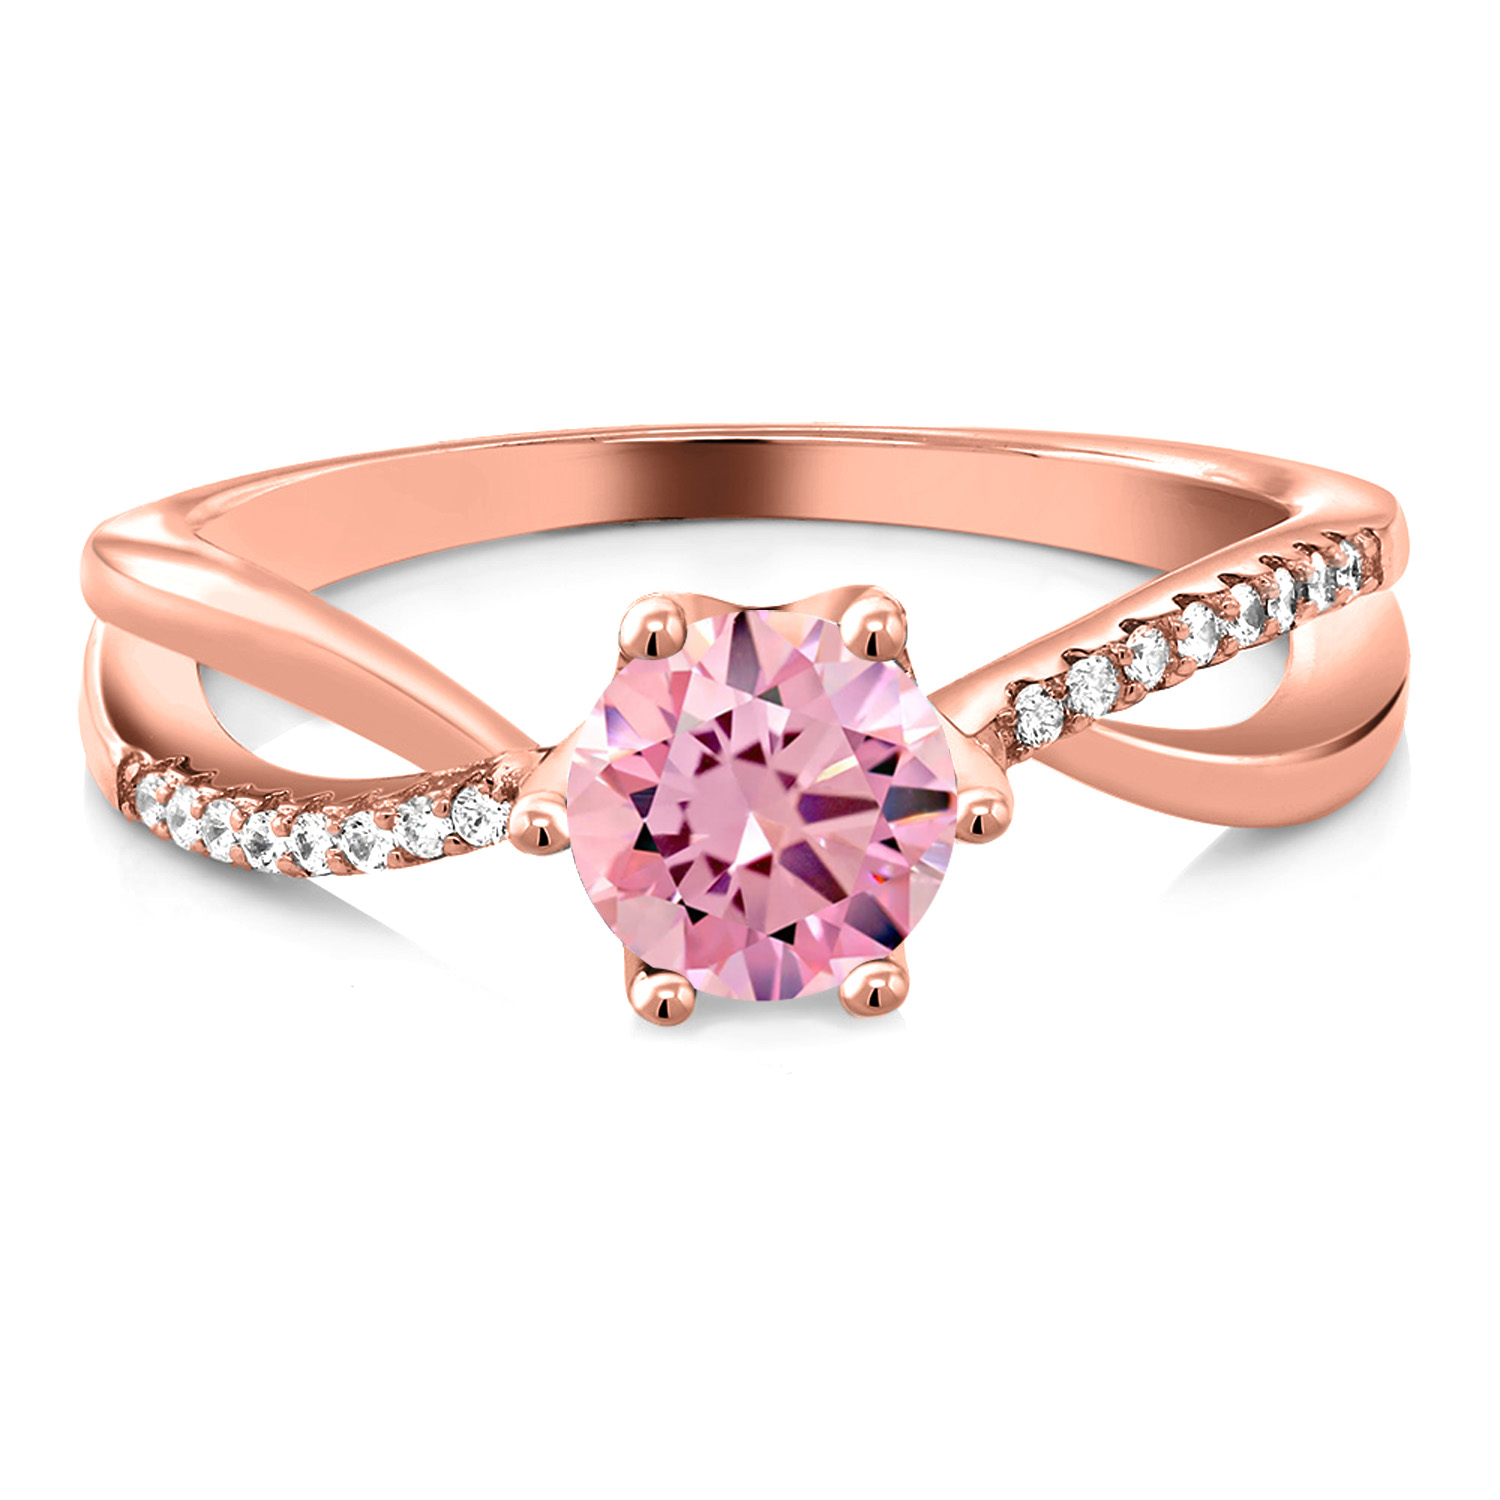 1.69 Ct Round Pink Zirconia 18K Rose Gold Plated Silver Ring | eBay